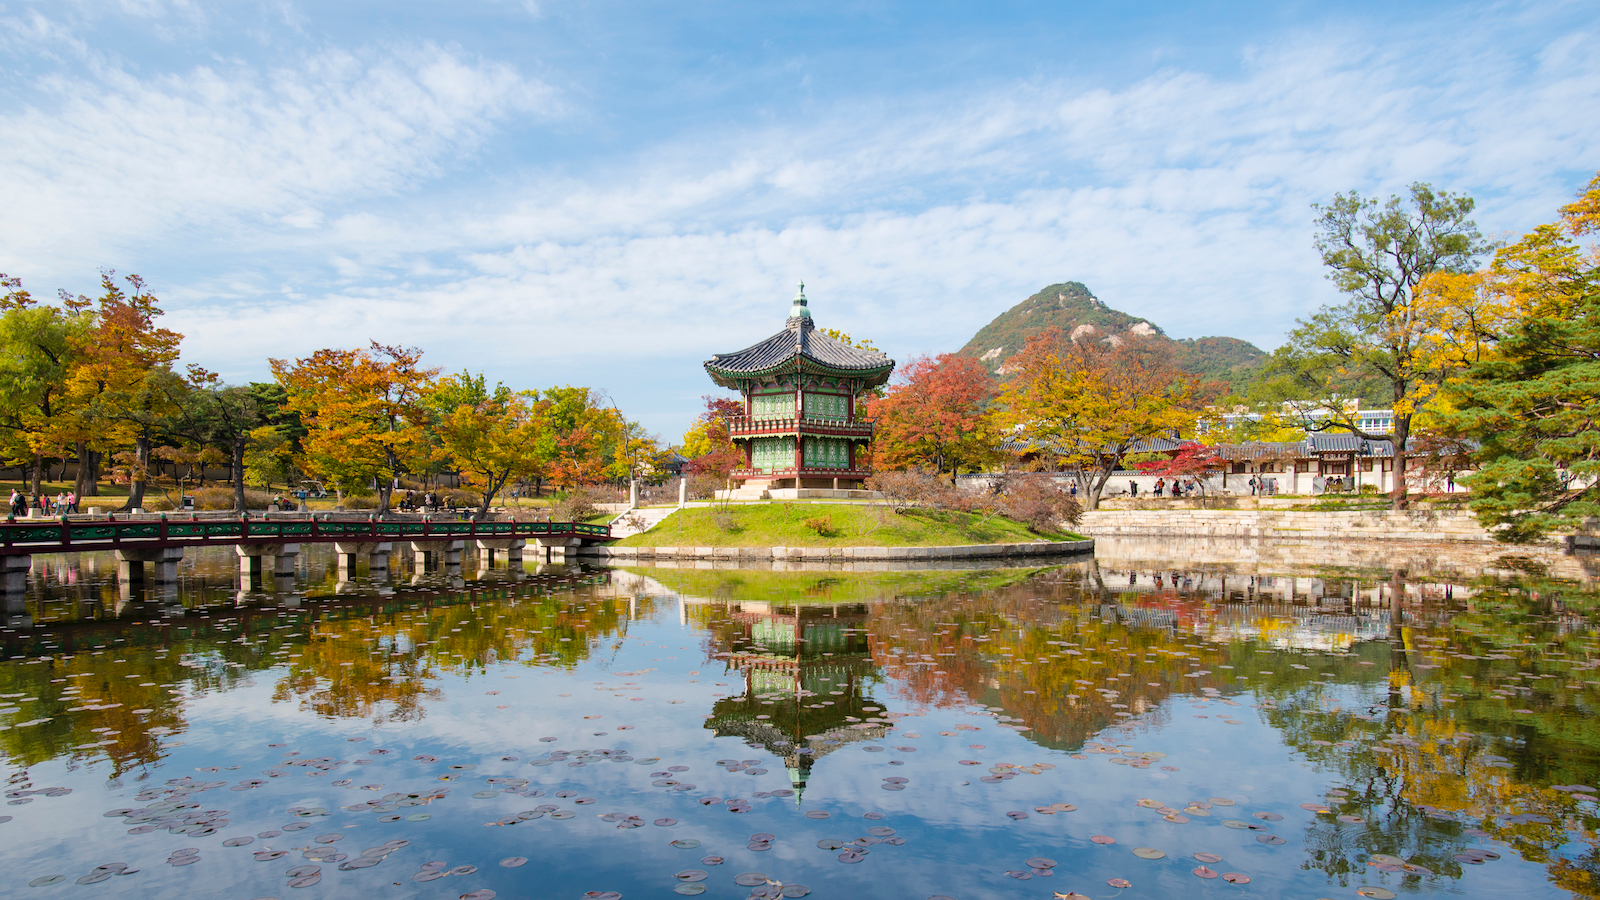 Hyangwonjeong place in Seoul, Korea